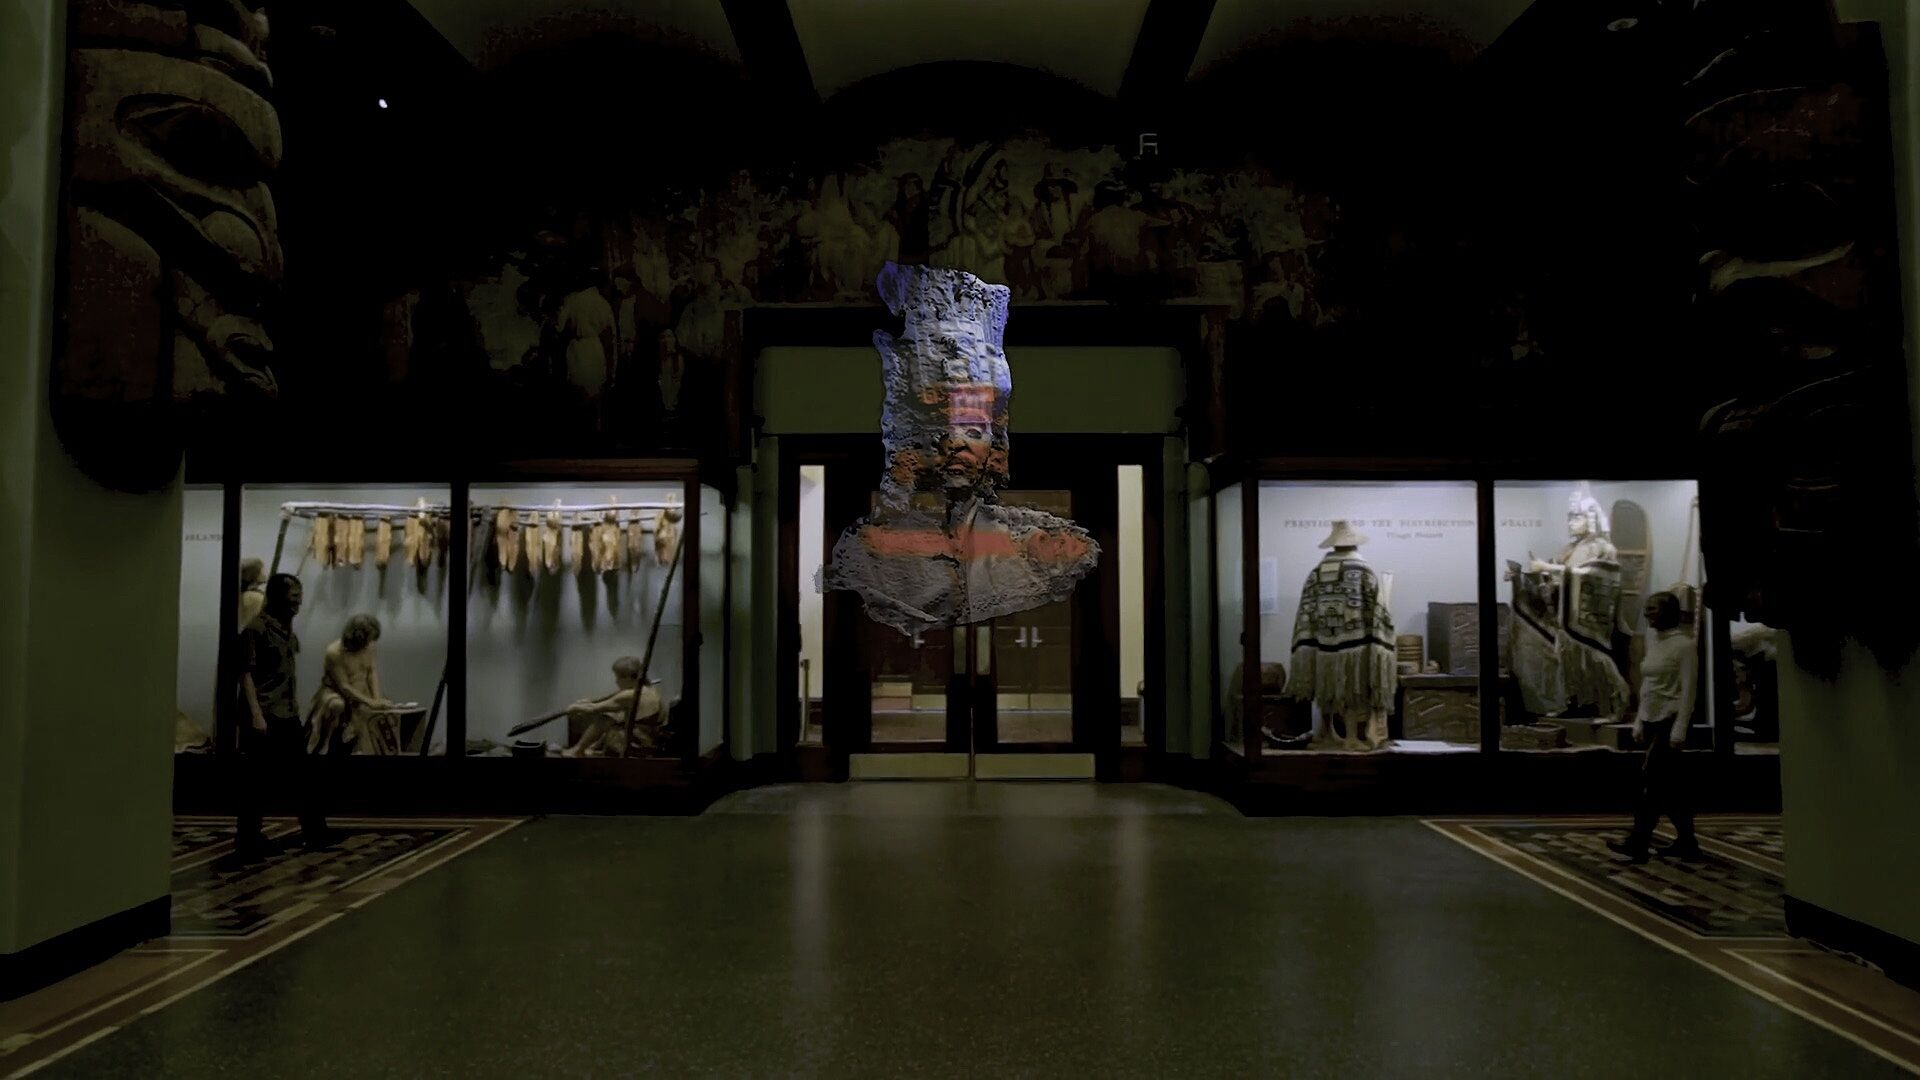 A view of an installation of a sculpture in the center of a room with other glass encasements of cultural objects.